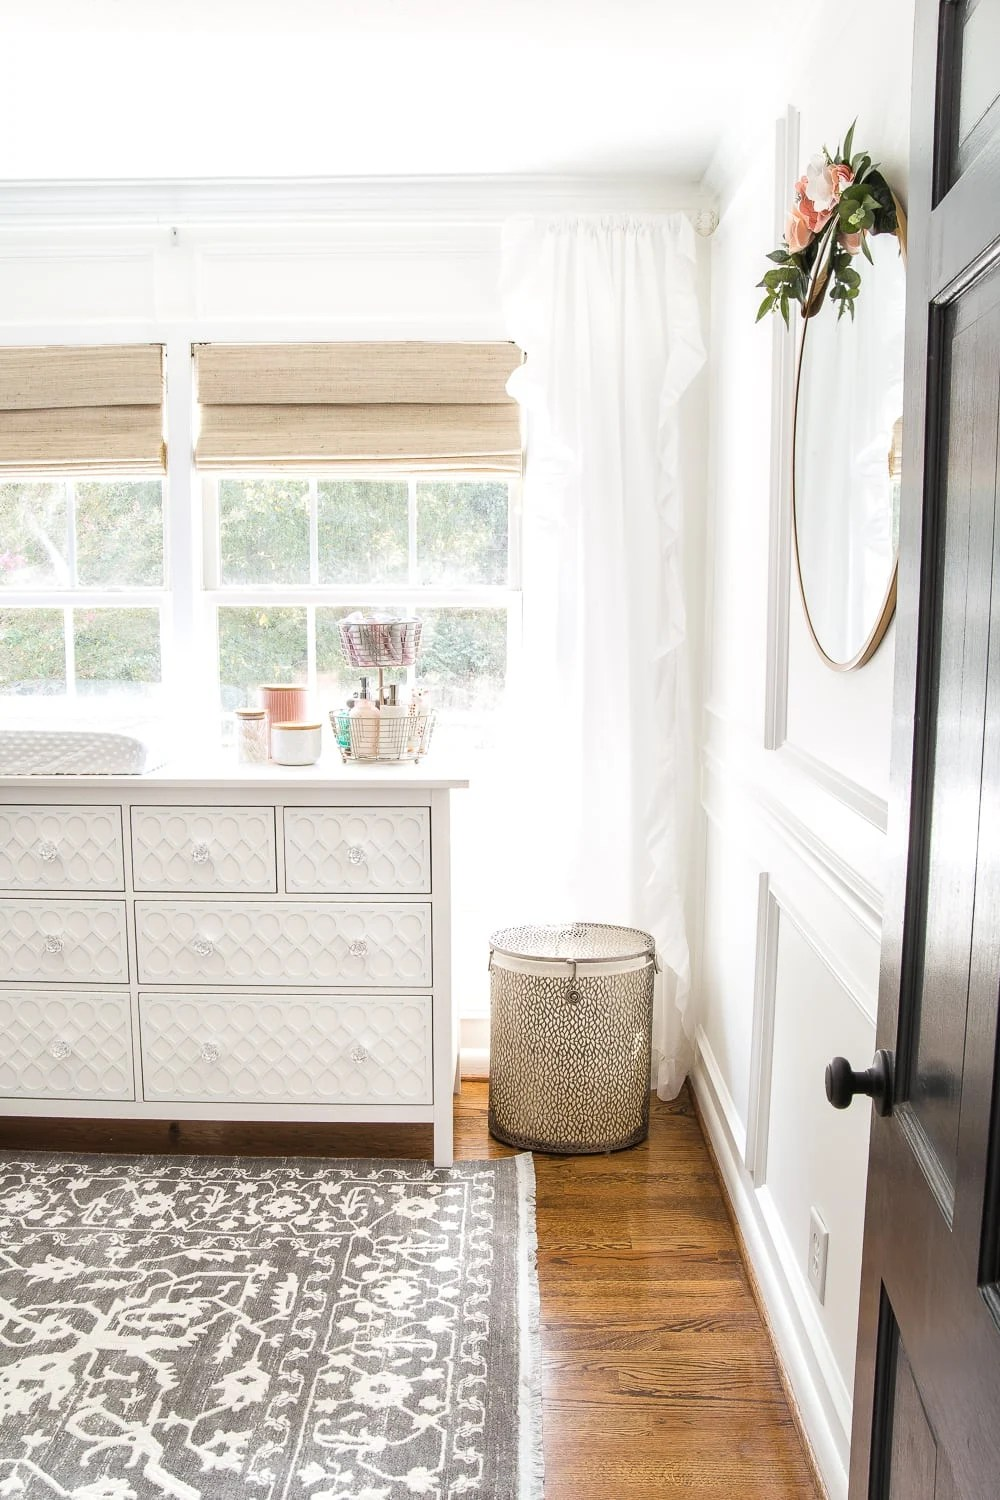 Nursery Organization - hamper, dresser, canisters, and tiered basket